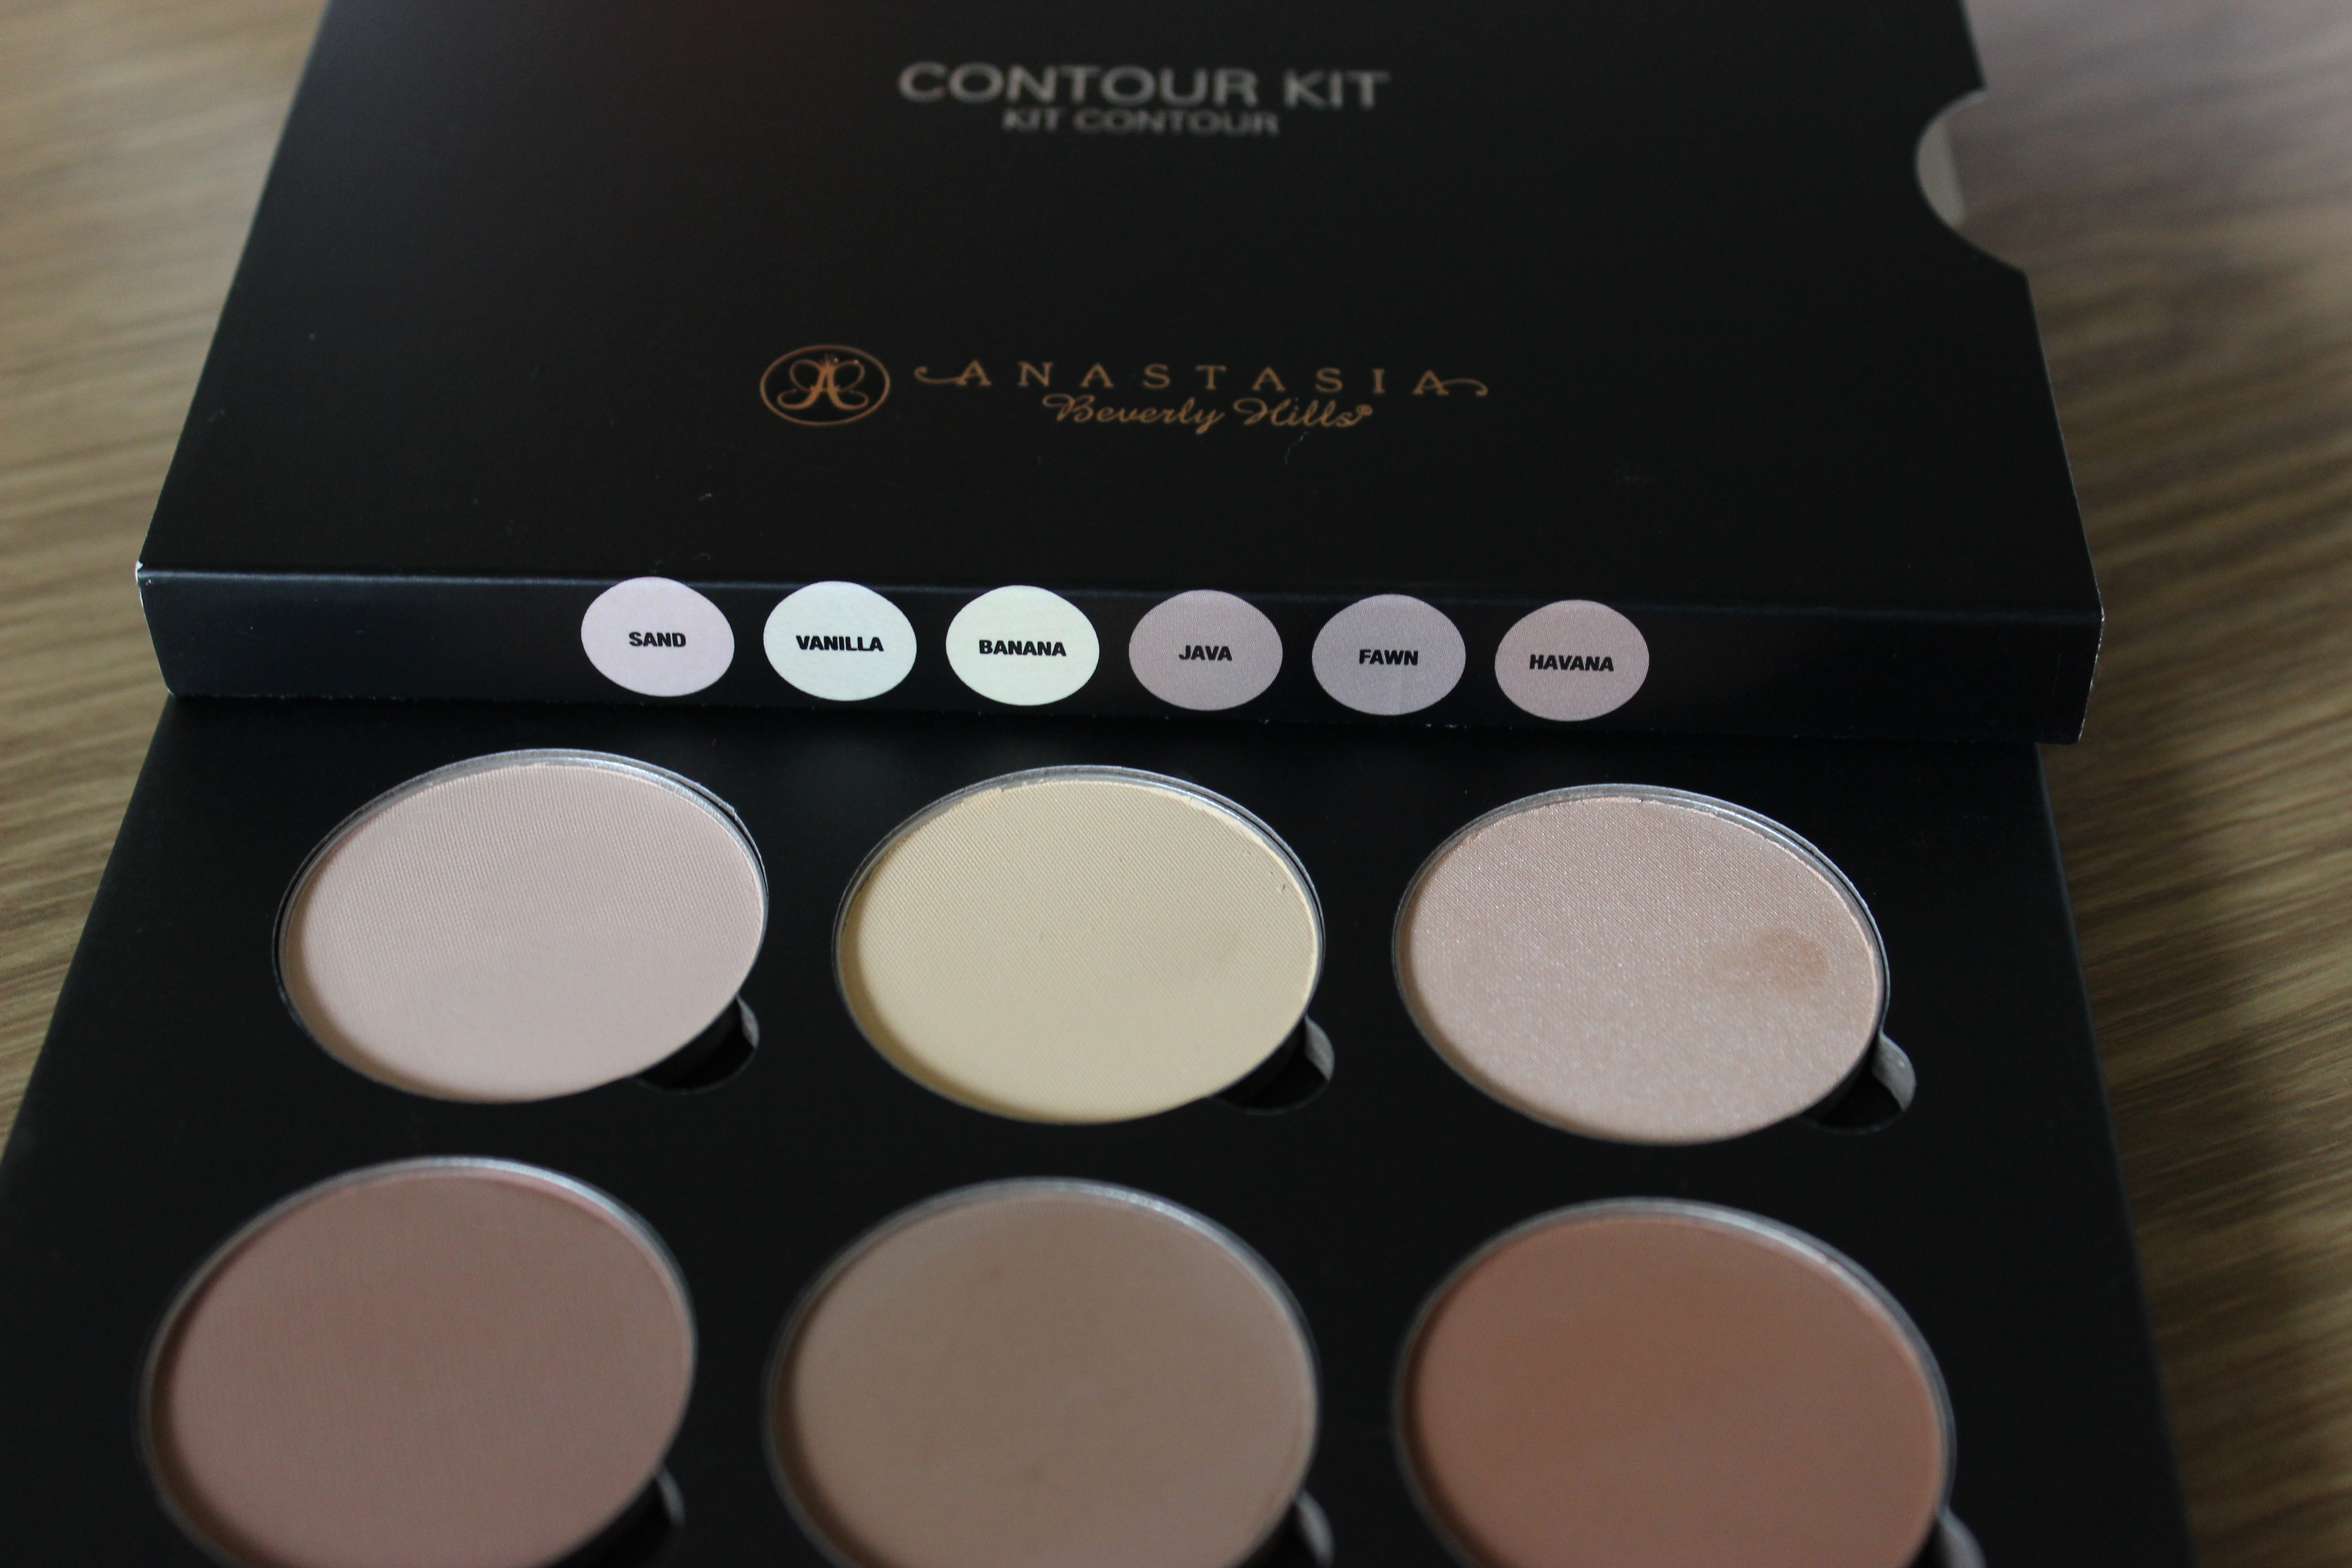 beverly hills contour kit will you be getting one for your kit. Black Bedroom Furniture Sets. Home Design Ideas